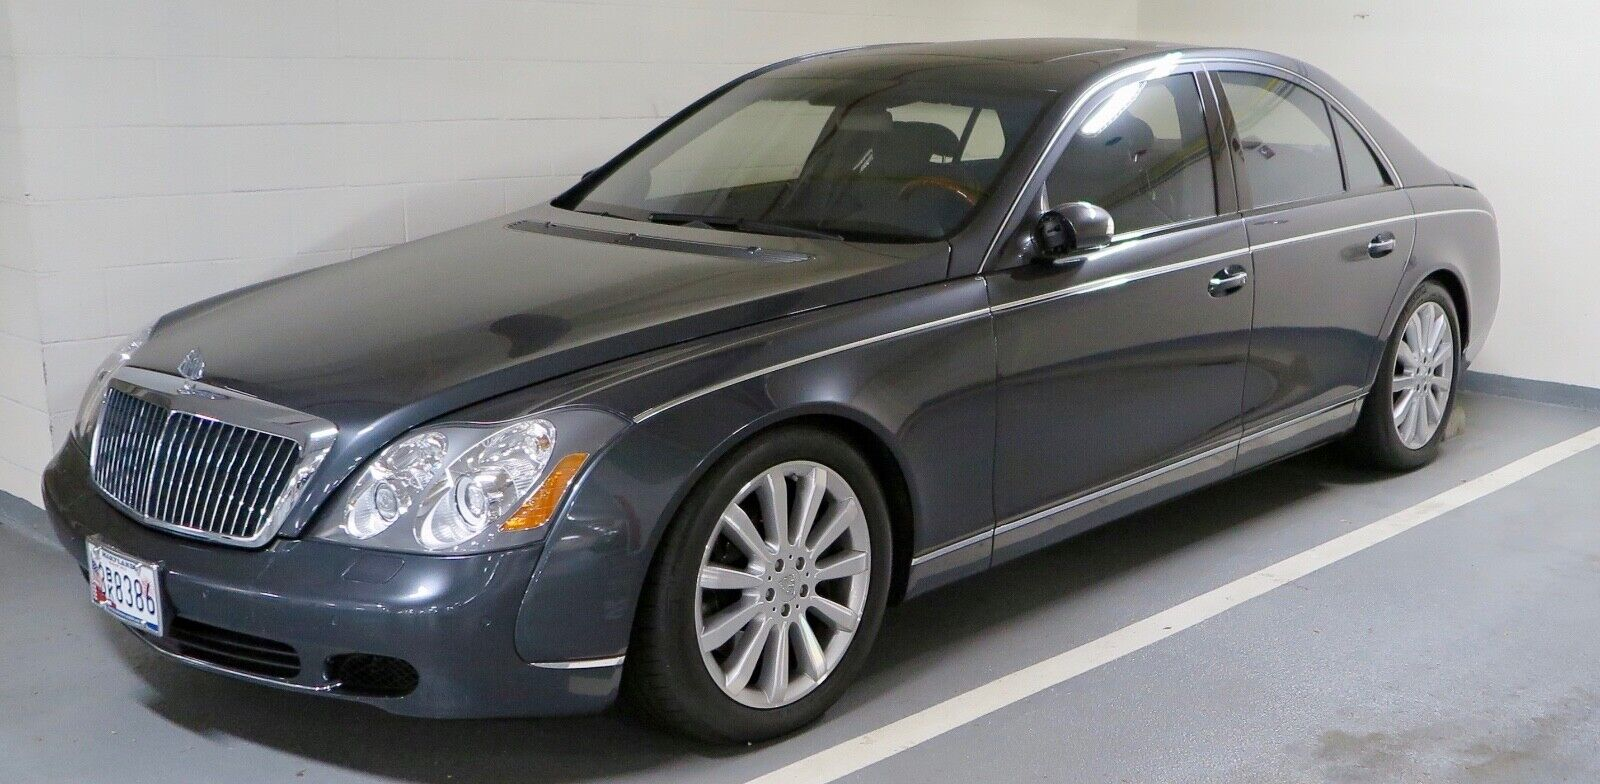 2004 Maybach 57  2004 Maybach 57, 21k Miles, Mint Condition, Serviced, All Records